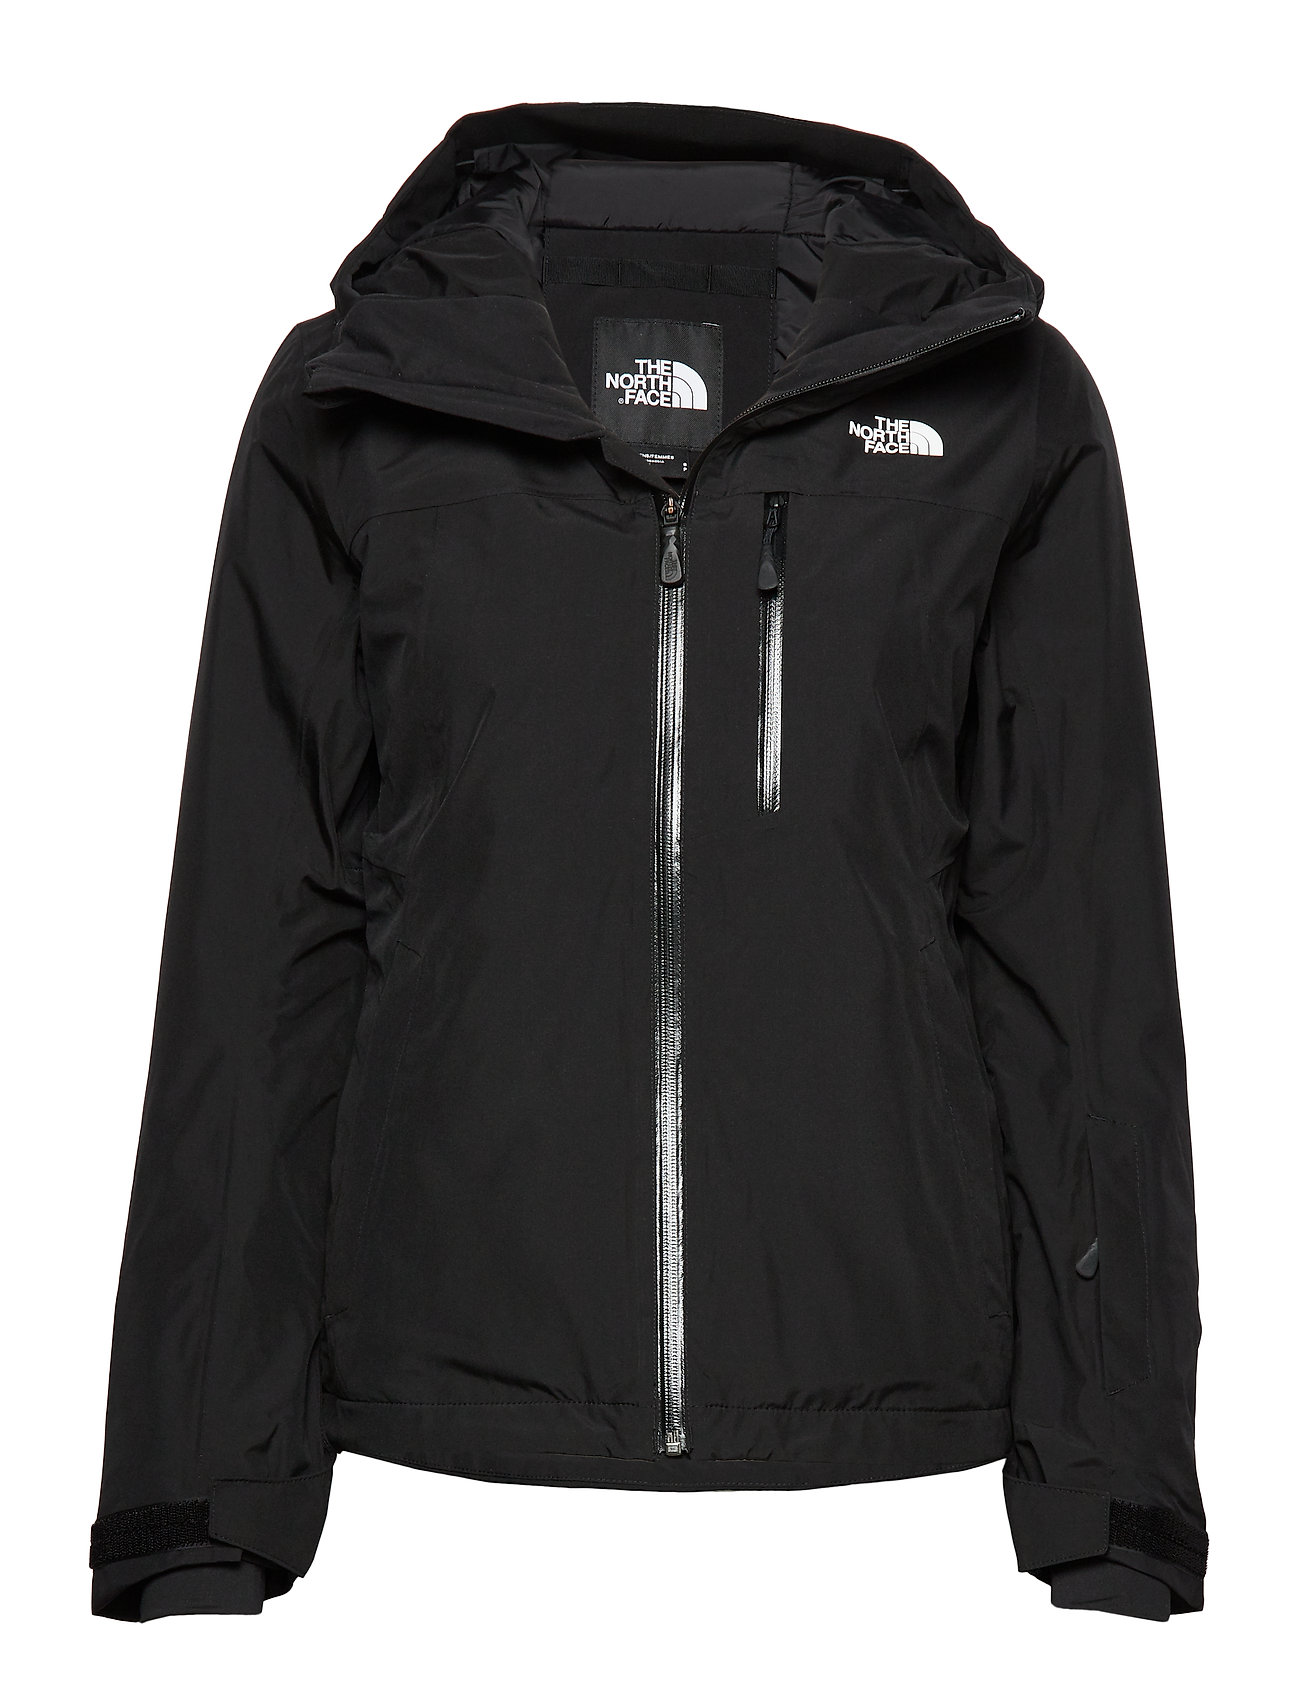 The North Face W DESCENDIT JACKET FIERY RED - TNF BLACK